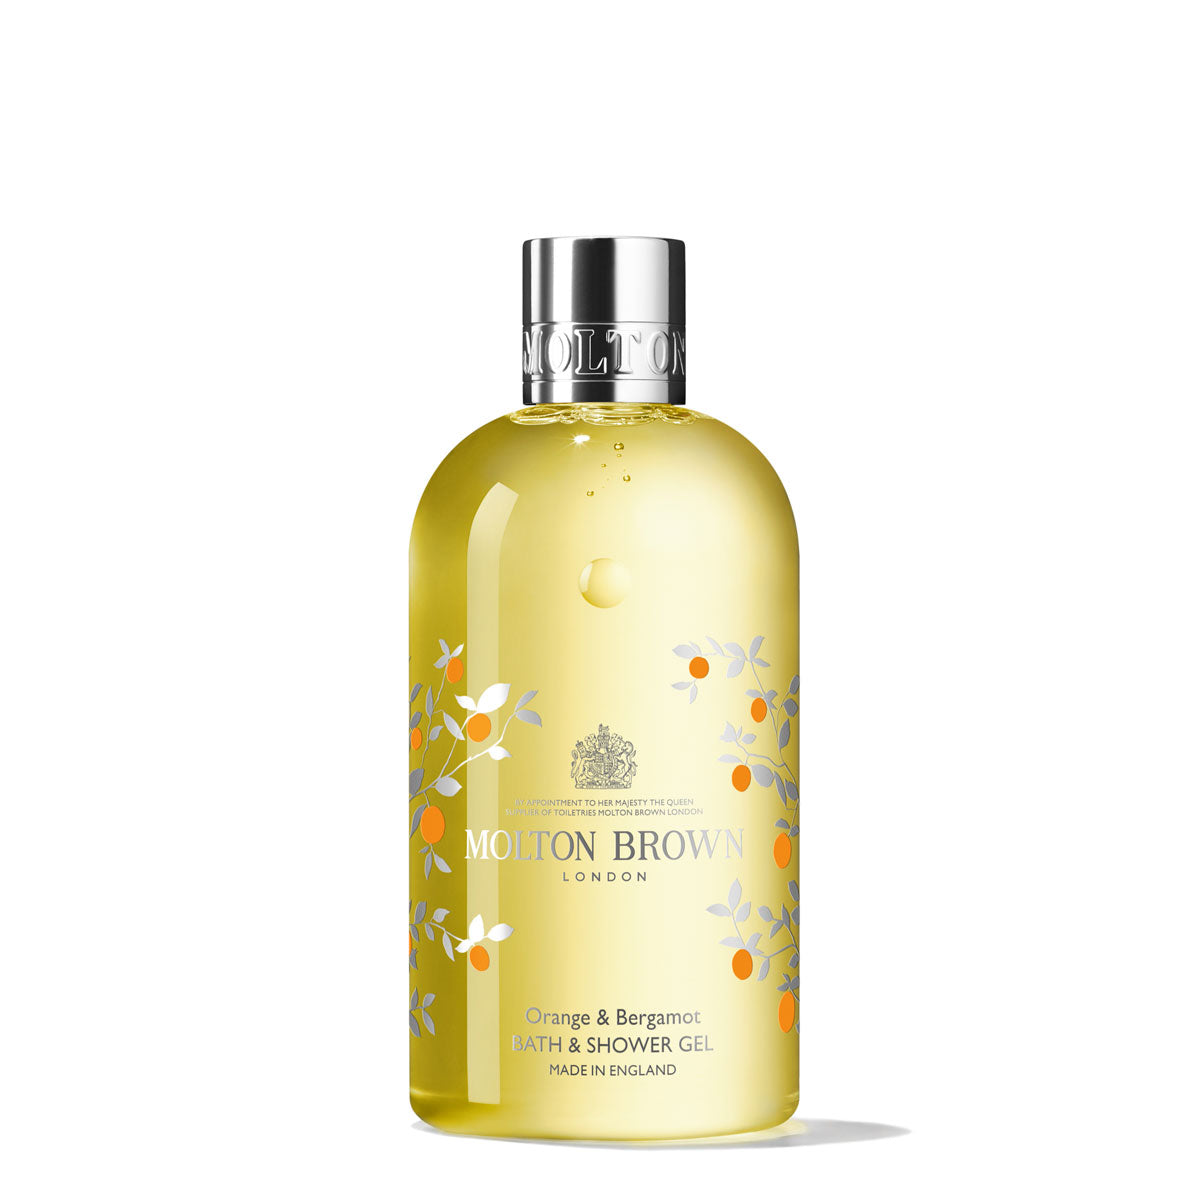 Molton Brown Orange & Bergamot Bath & Shower Gel 300ml - Limited Edition